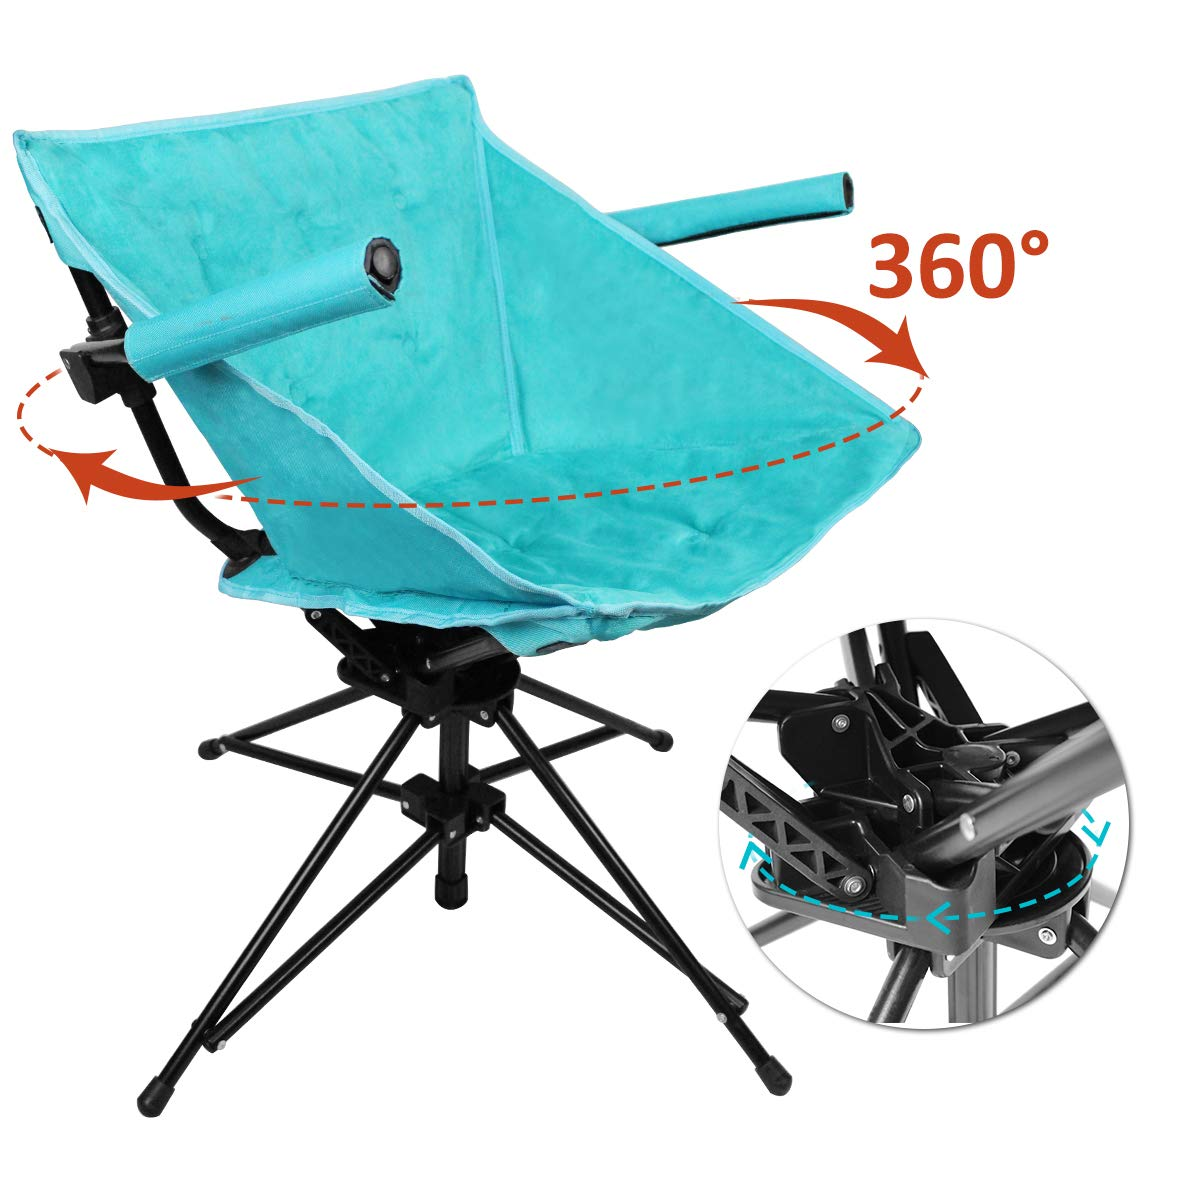 Magnificent Zenree Folding Camping Hunting Chairs Outdoor Portable Blind Swivel Chair Comfortable Compact Fishing Sports Seat With Black Microfiber Padded Seat Bralicious Painted Fabric Chair Ideas Braliciousco